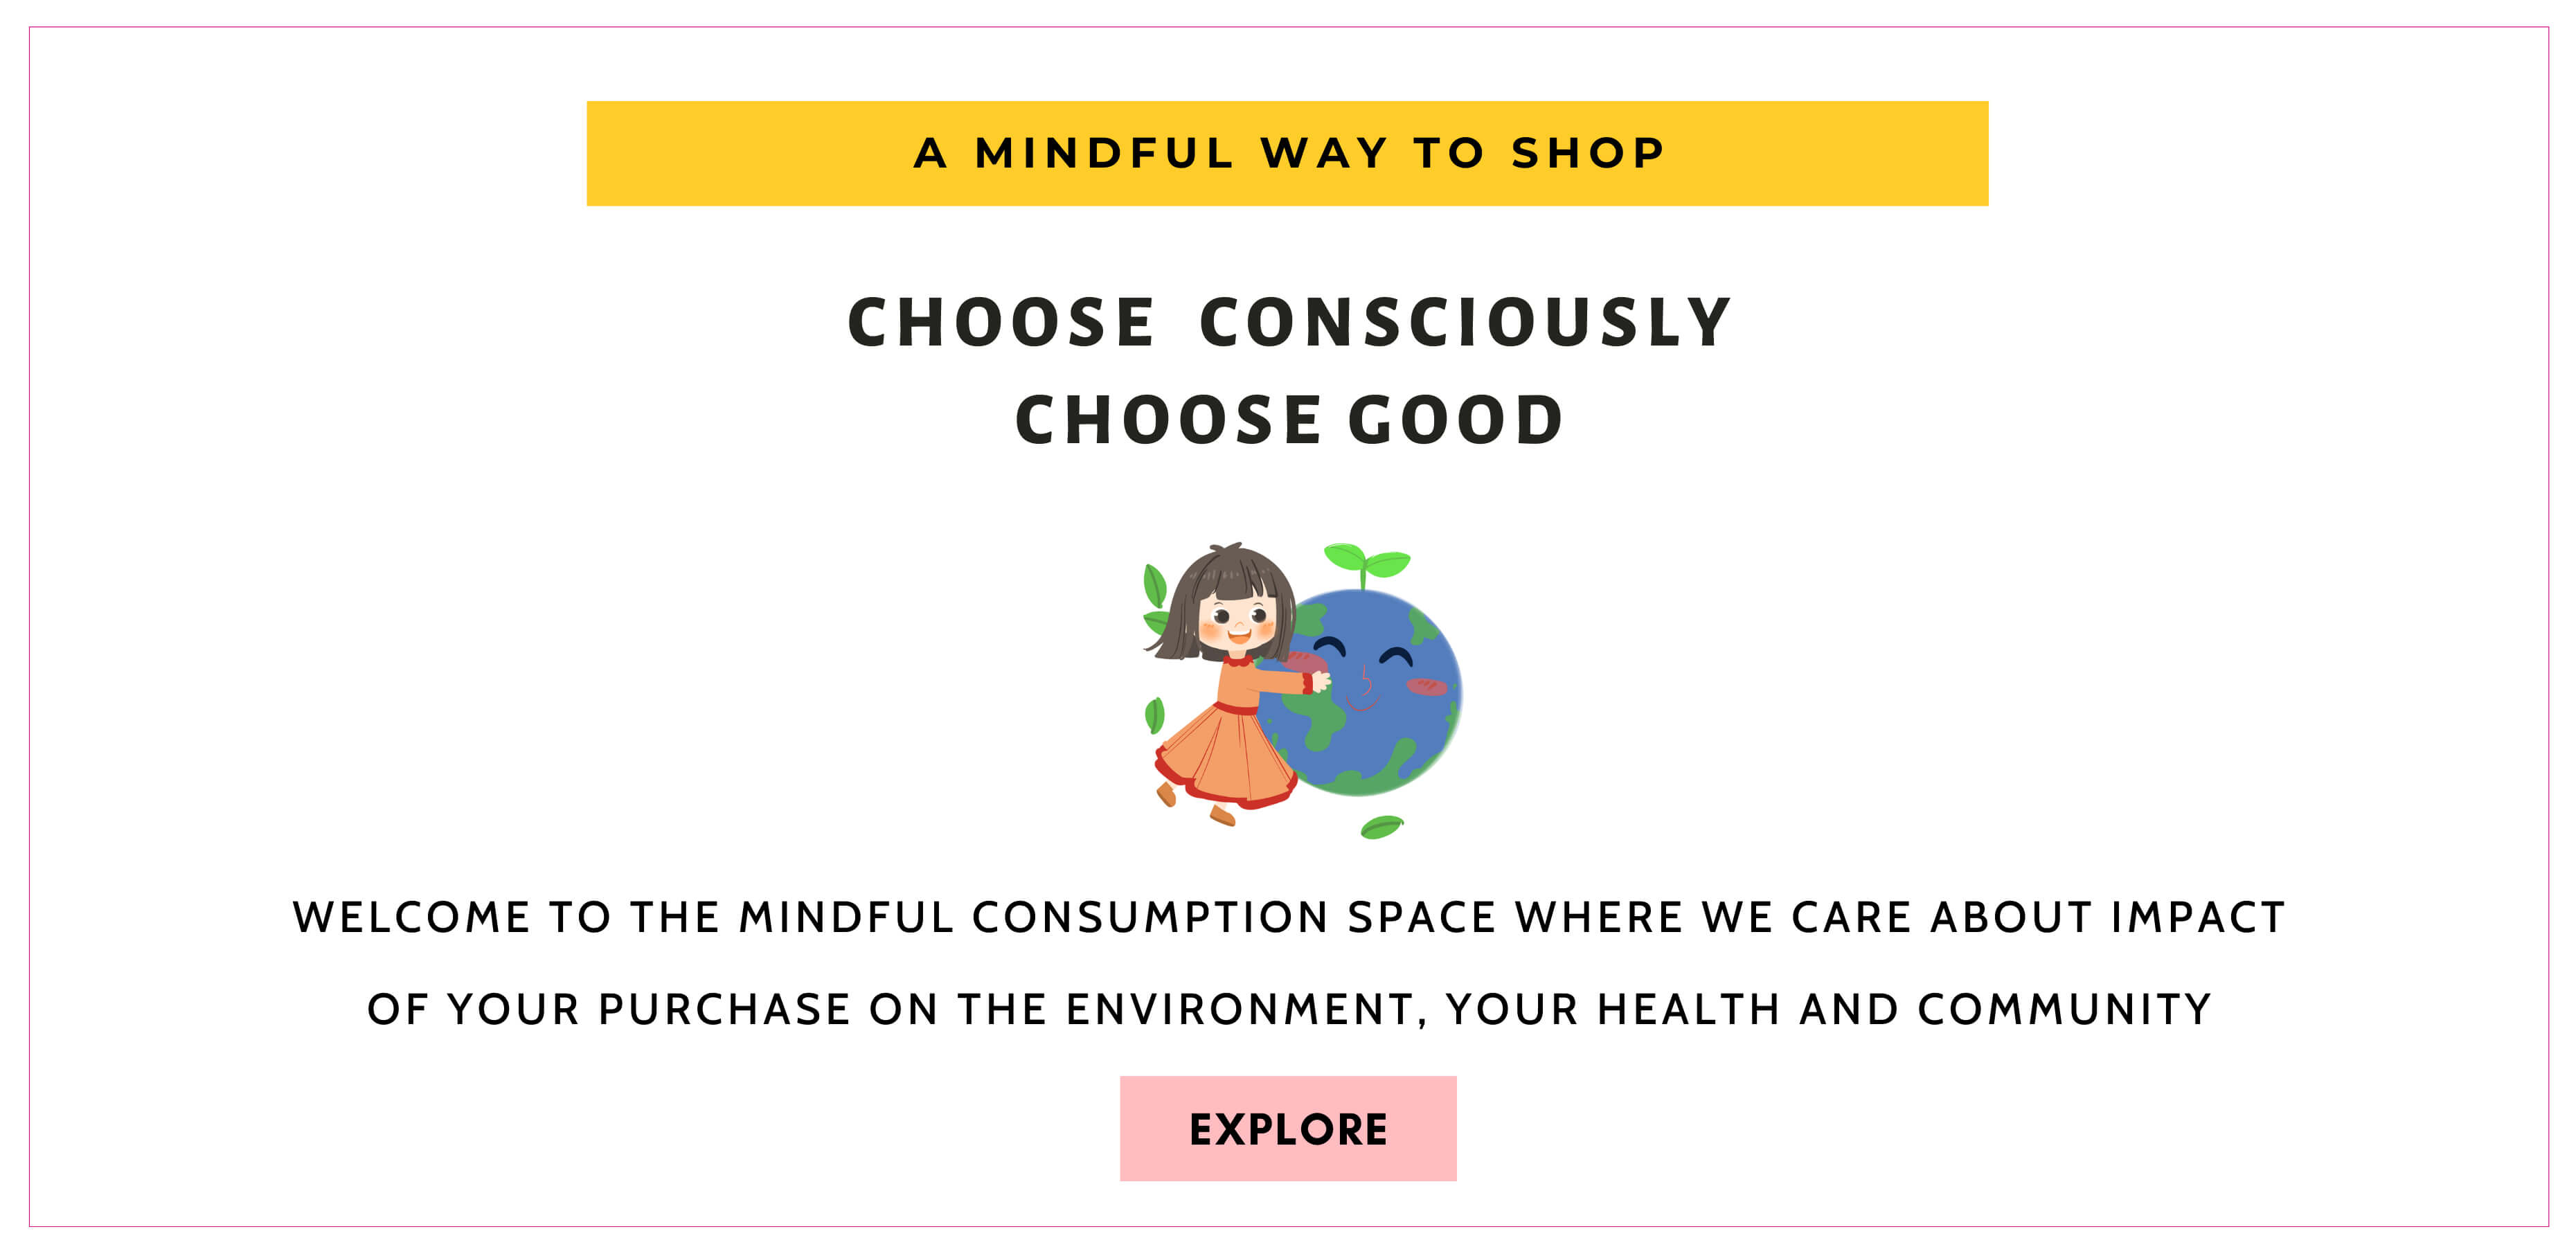 mindful consumption, conscious shopping